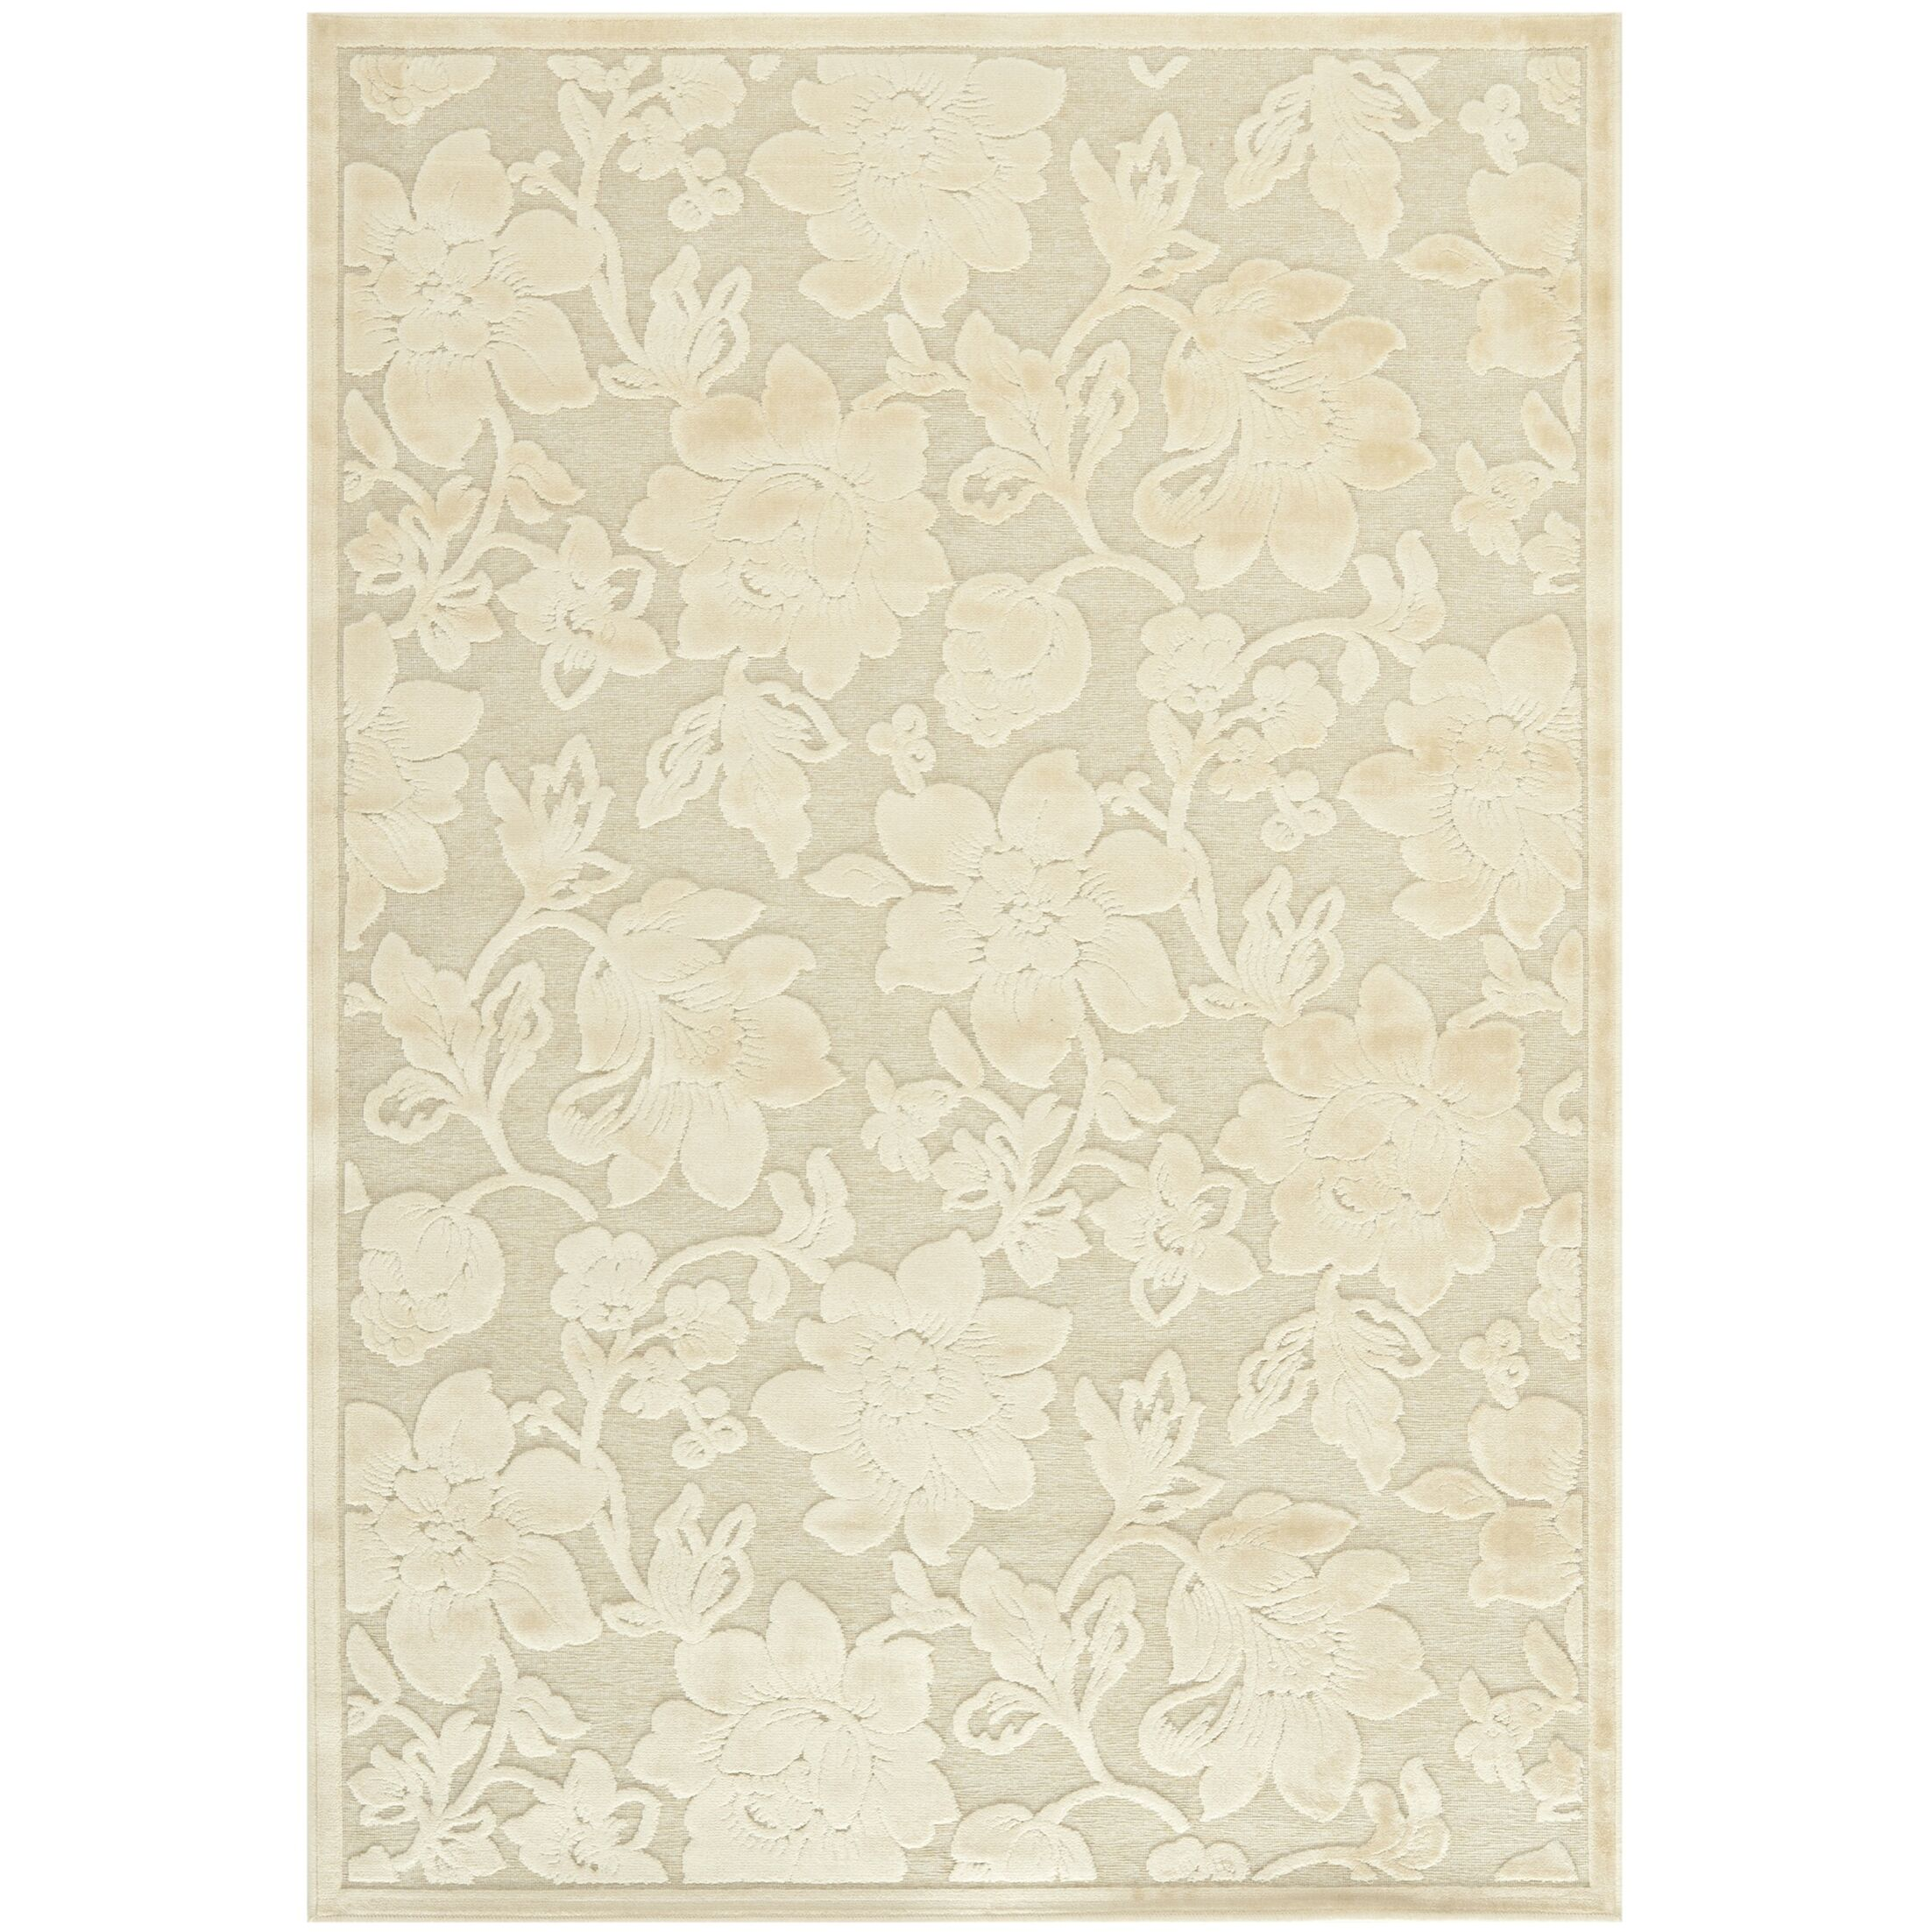 Maspeth Creme Country & Floral Rug Rug Size: Rectangle 4' x 5'7